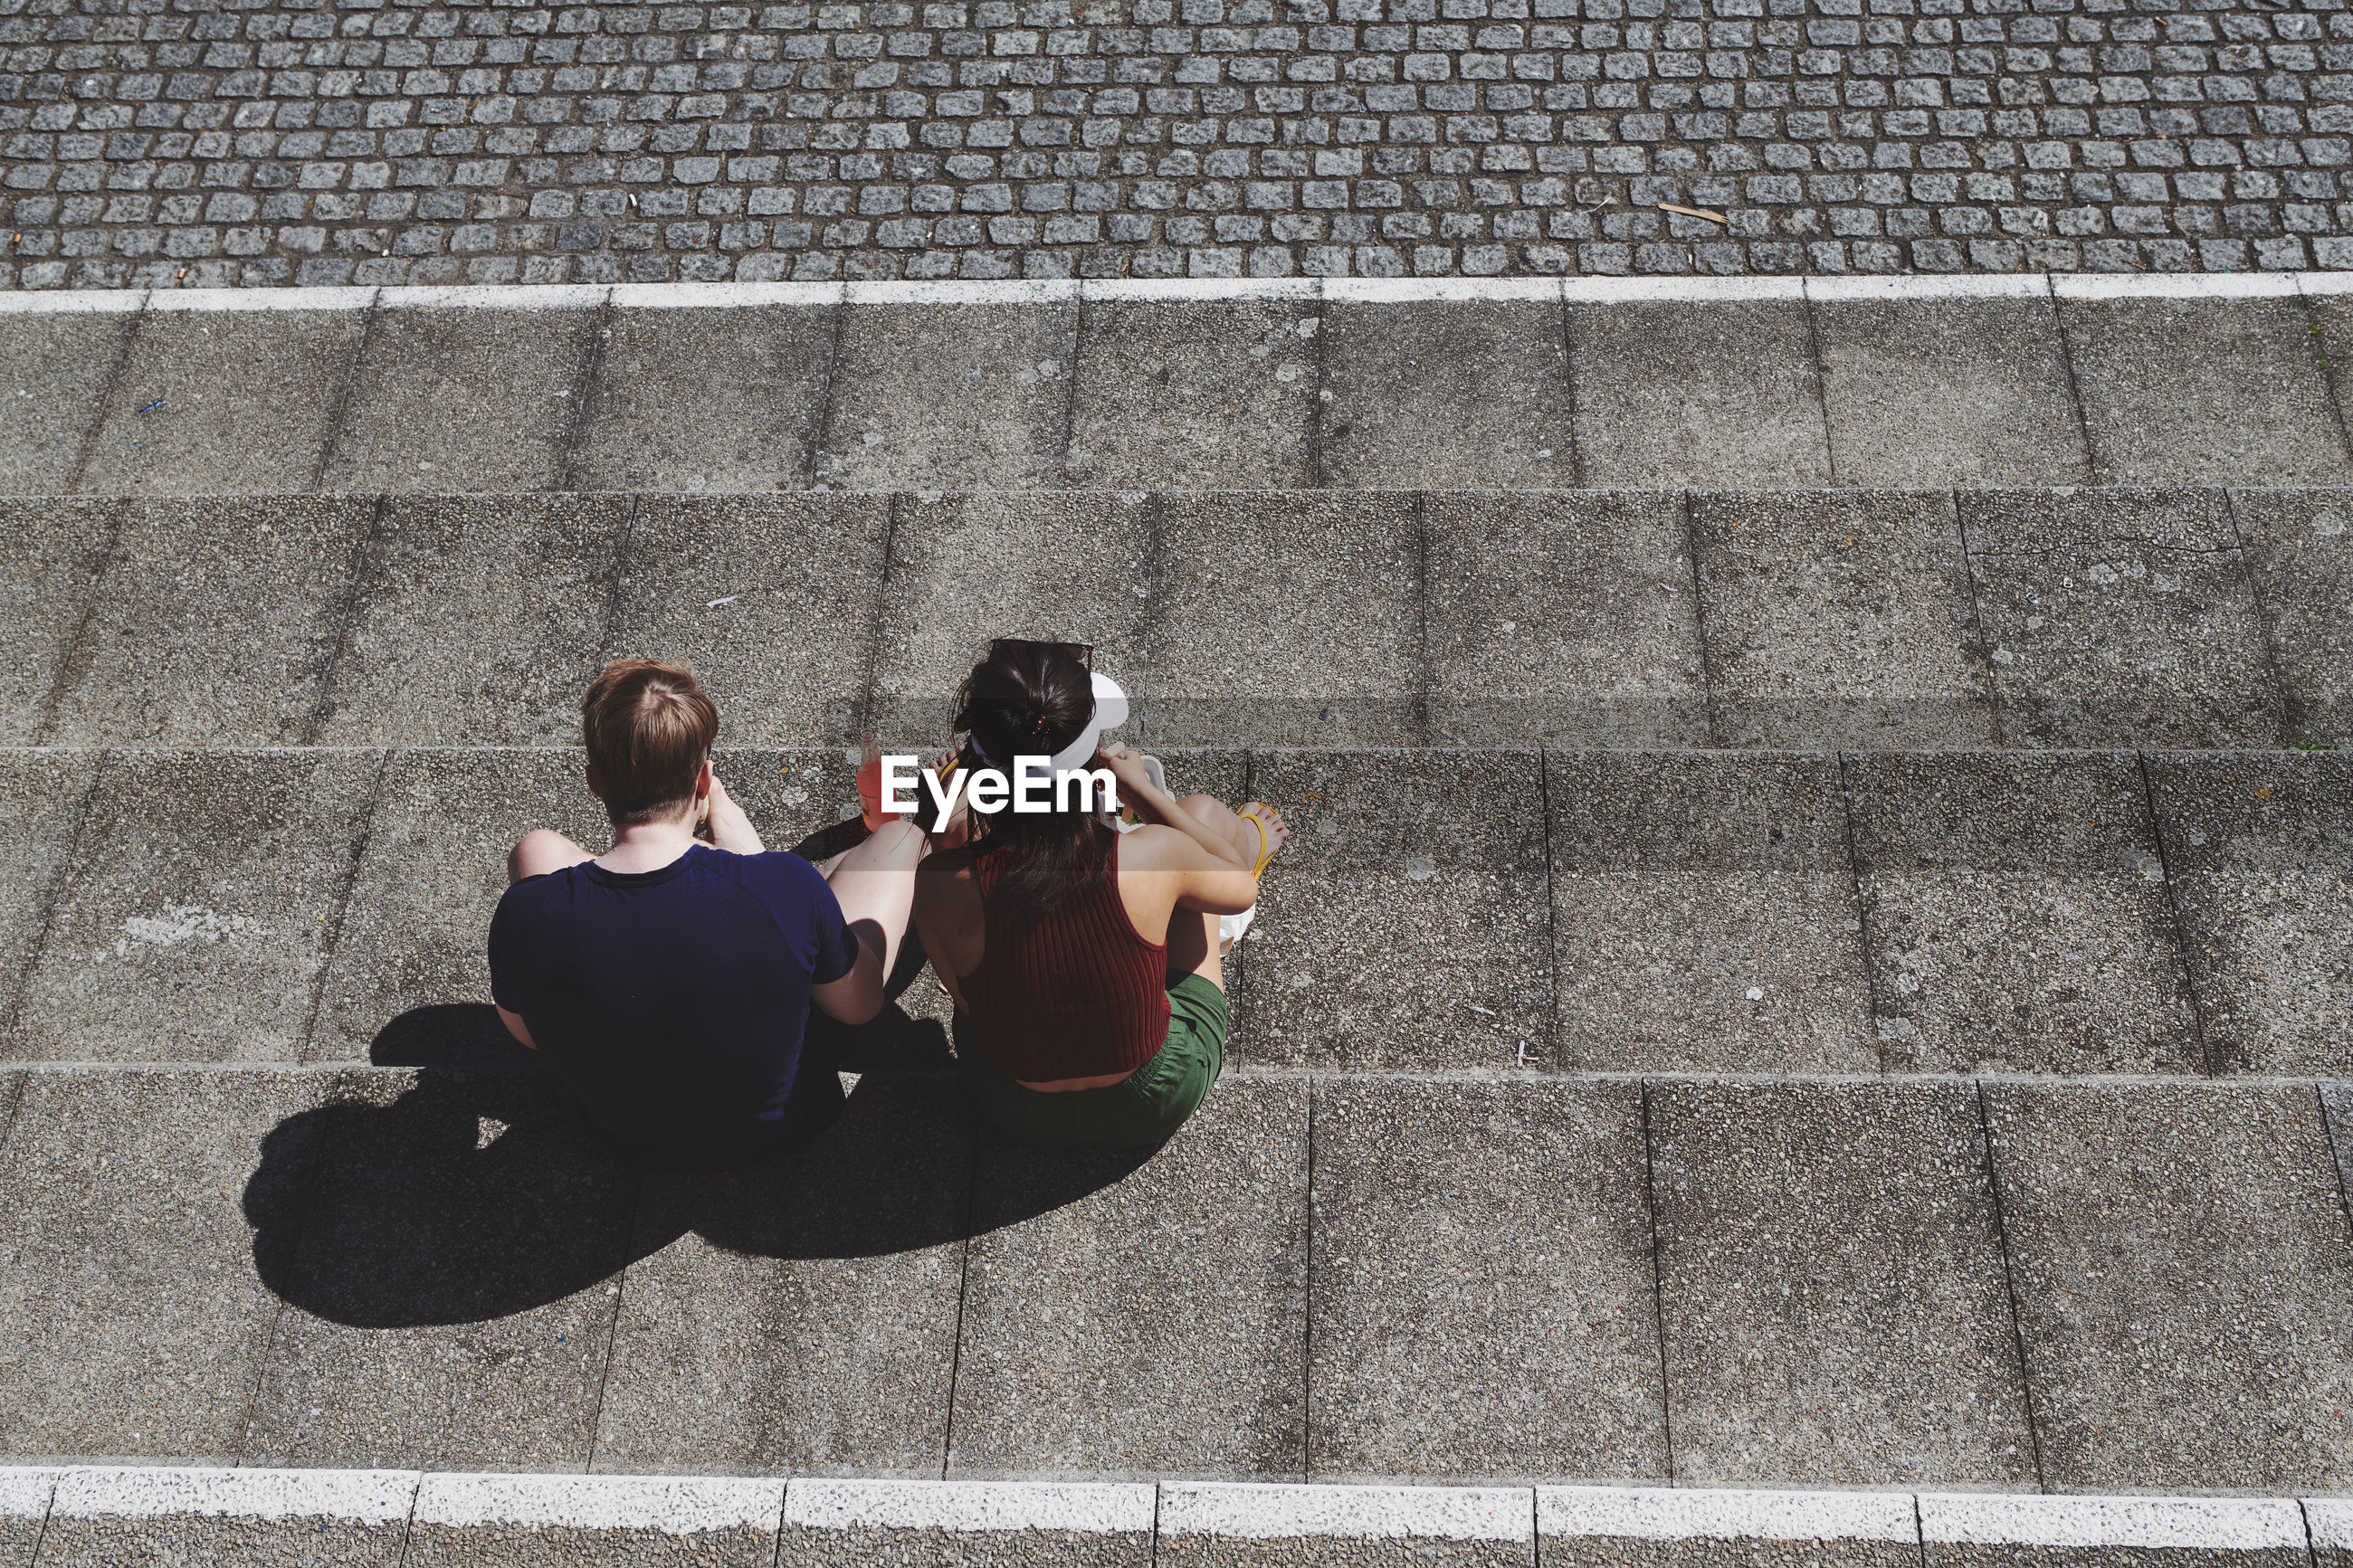 HIGH ANGLE VIEW OF WOMEN SITTING ON STAIRCASE